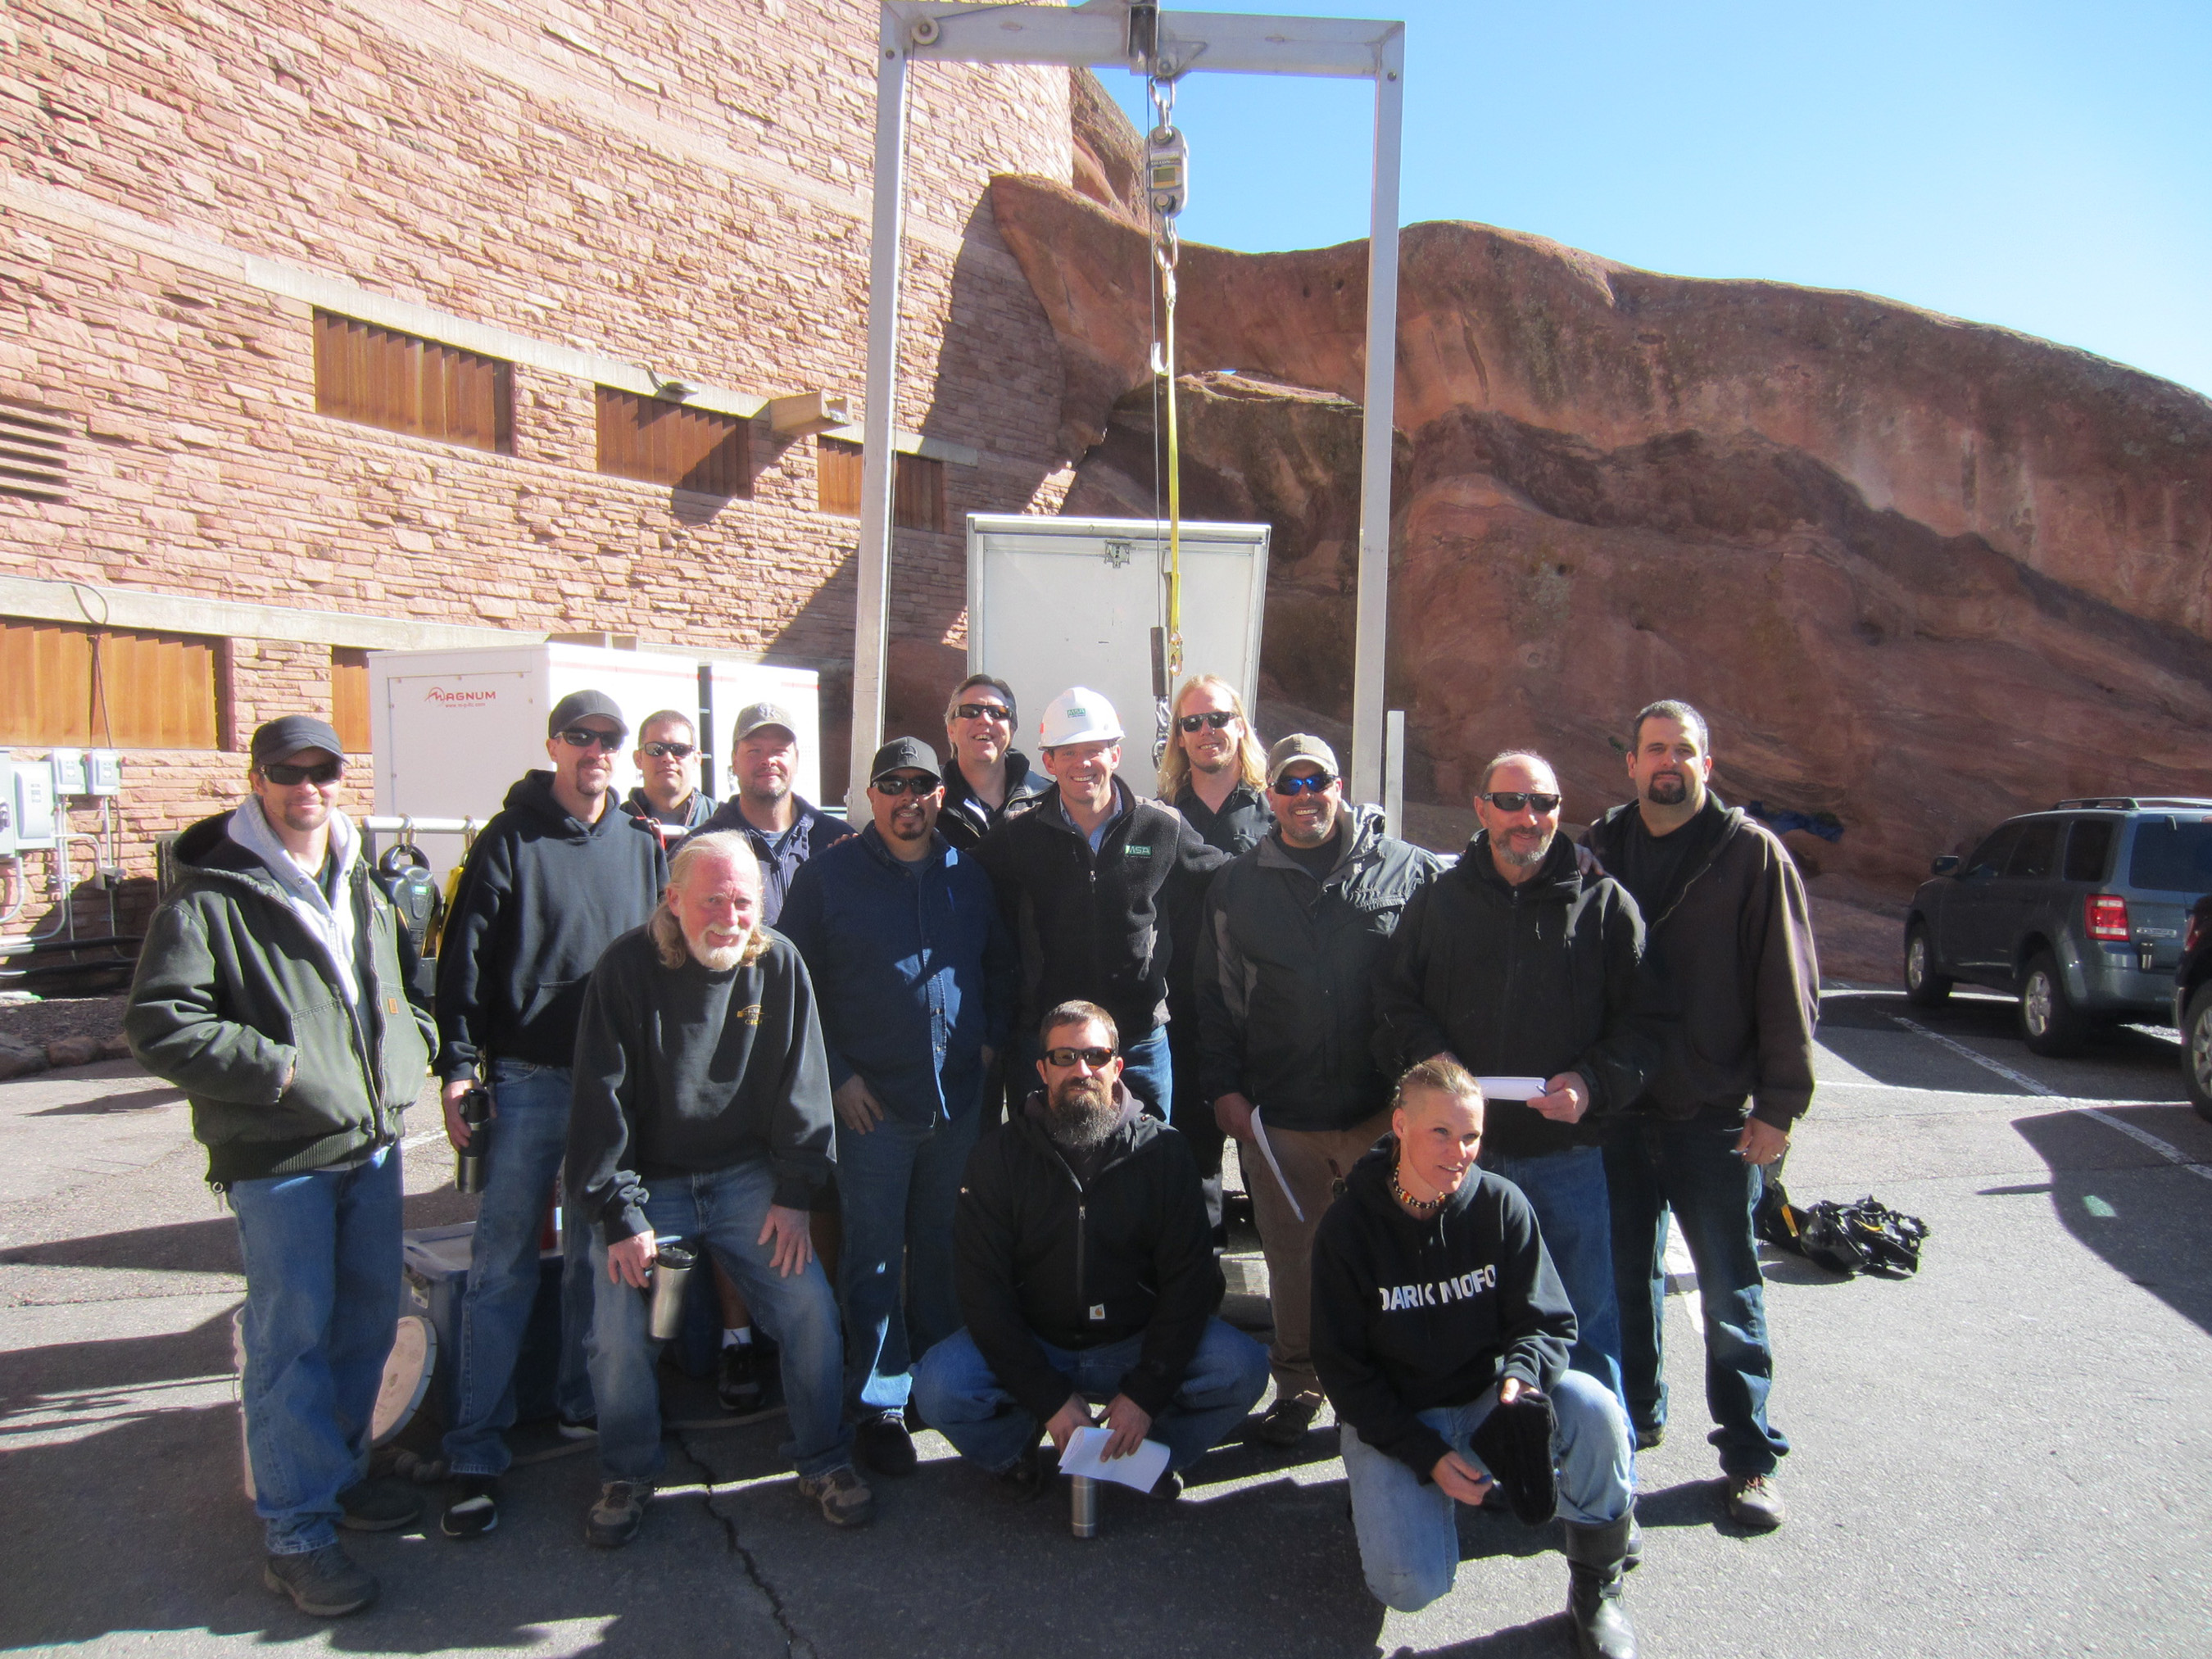 The Red Rocks Amphitheatre staging crew in Morrison, CO after fall protection training performed by MSA safety expert, Justin Sweney.